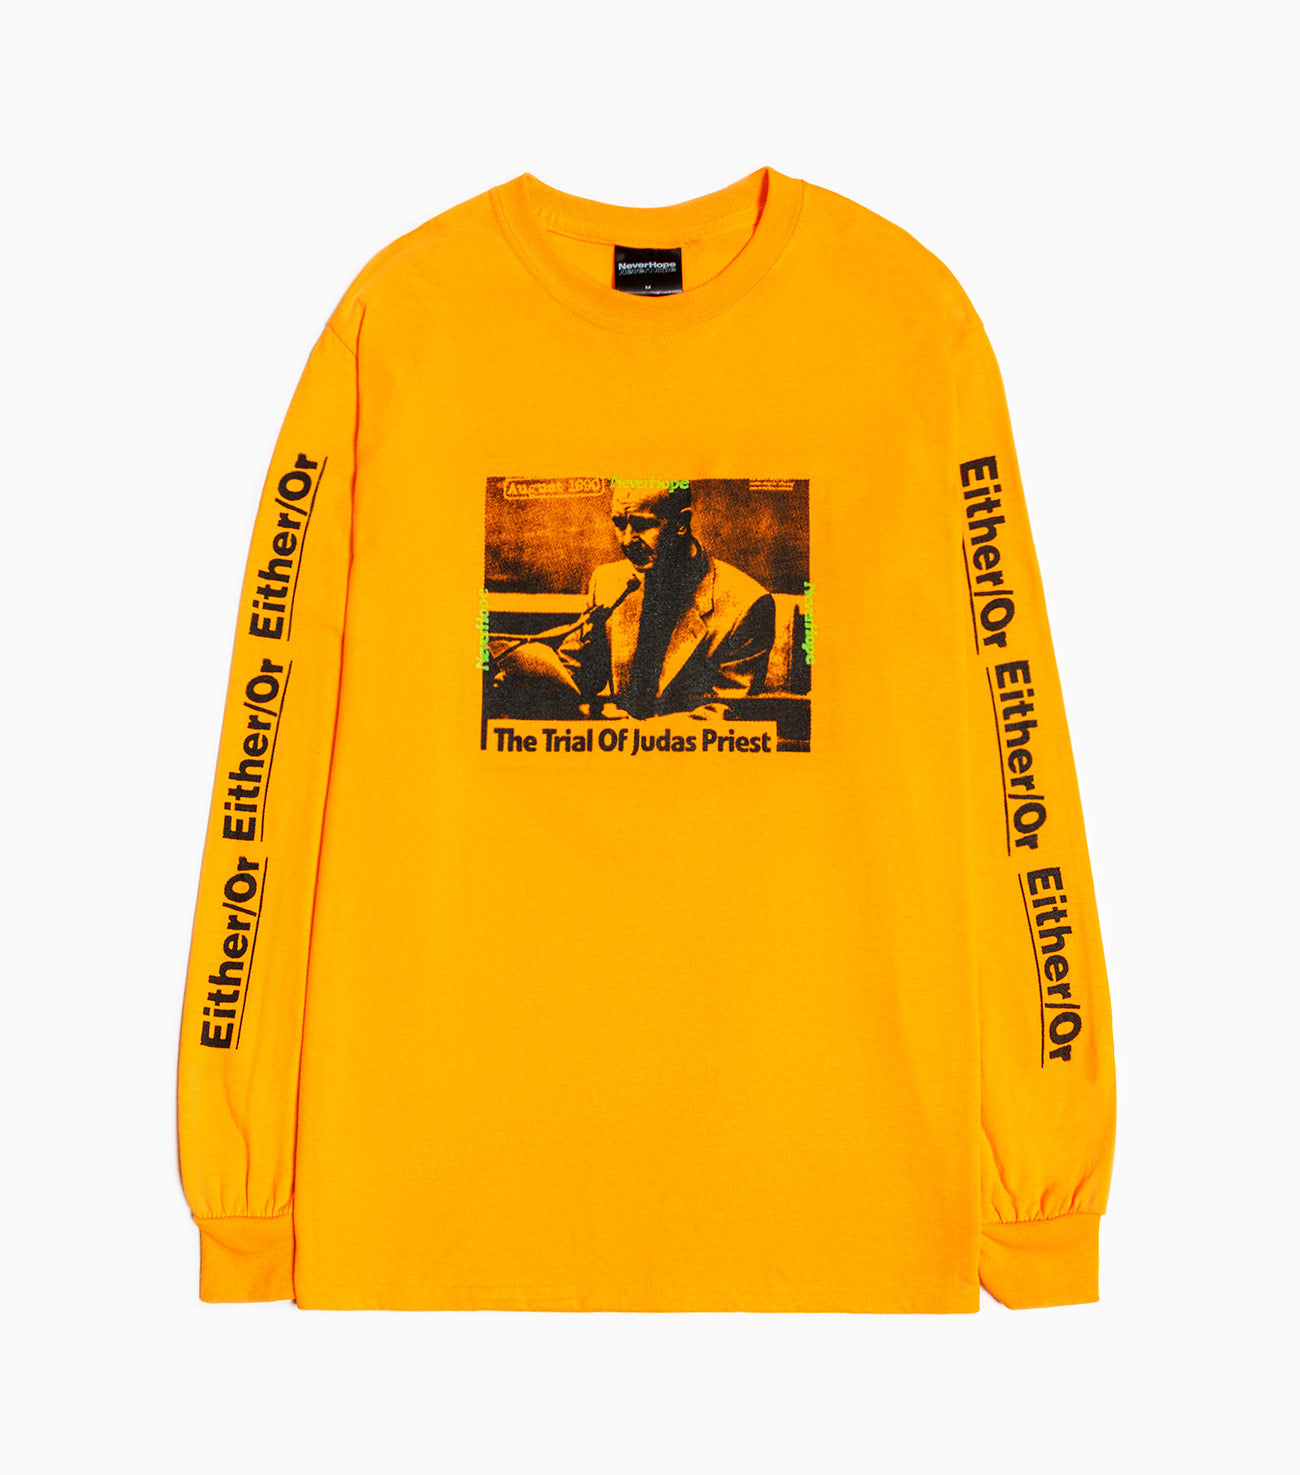 NeverHope Trials Long Sleeve - Orange